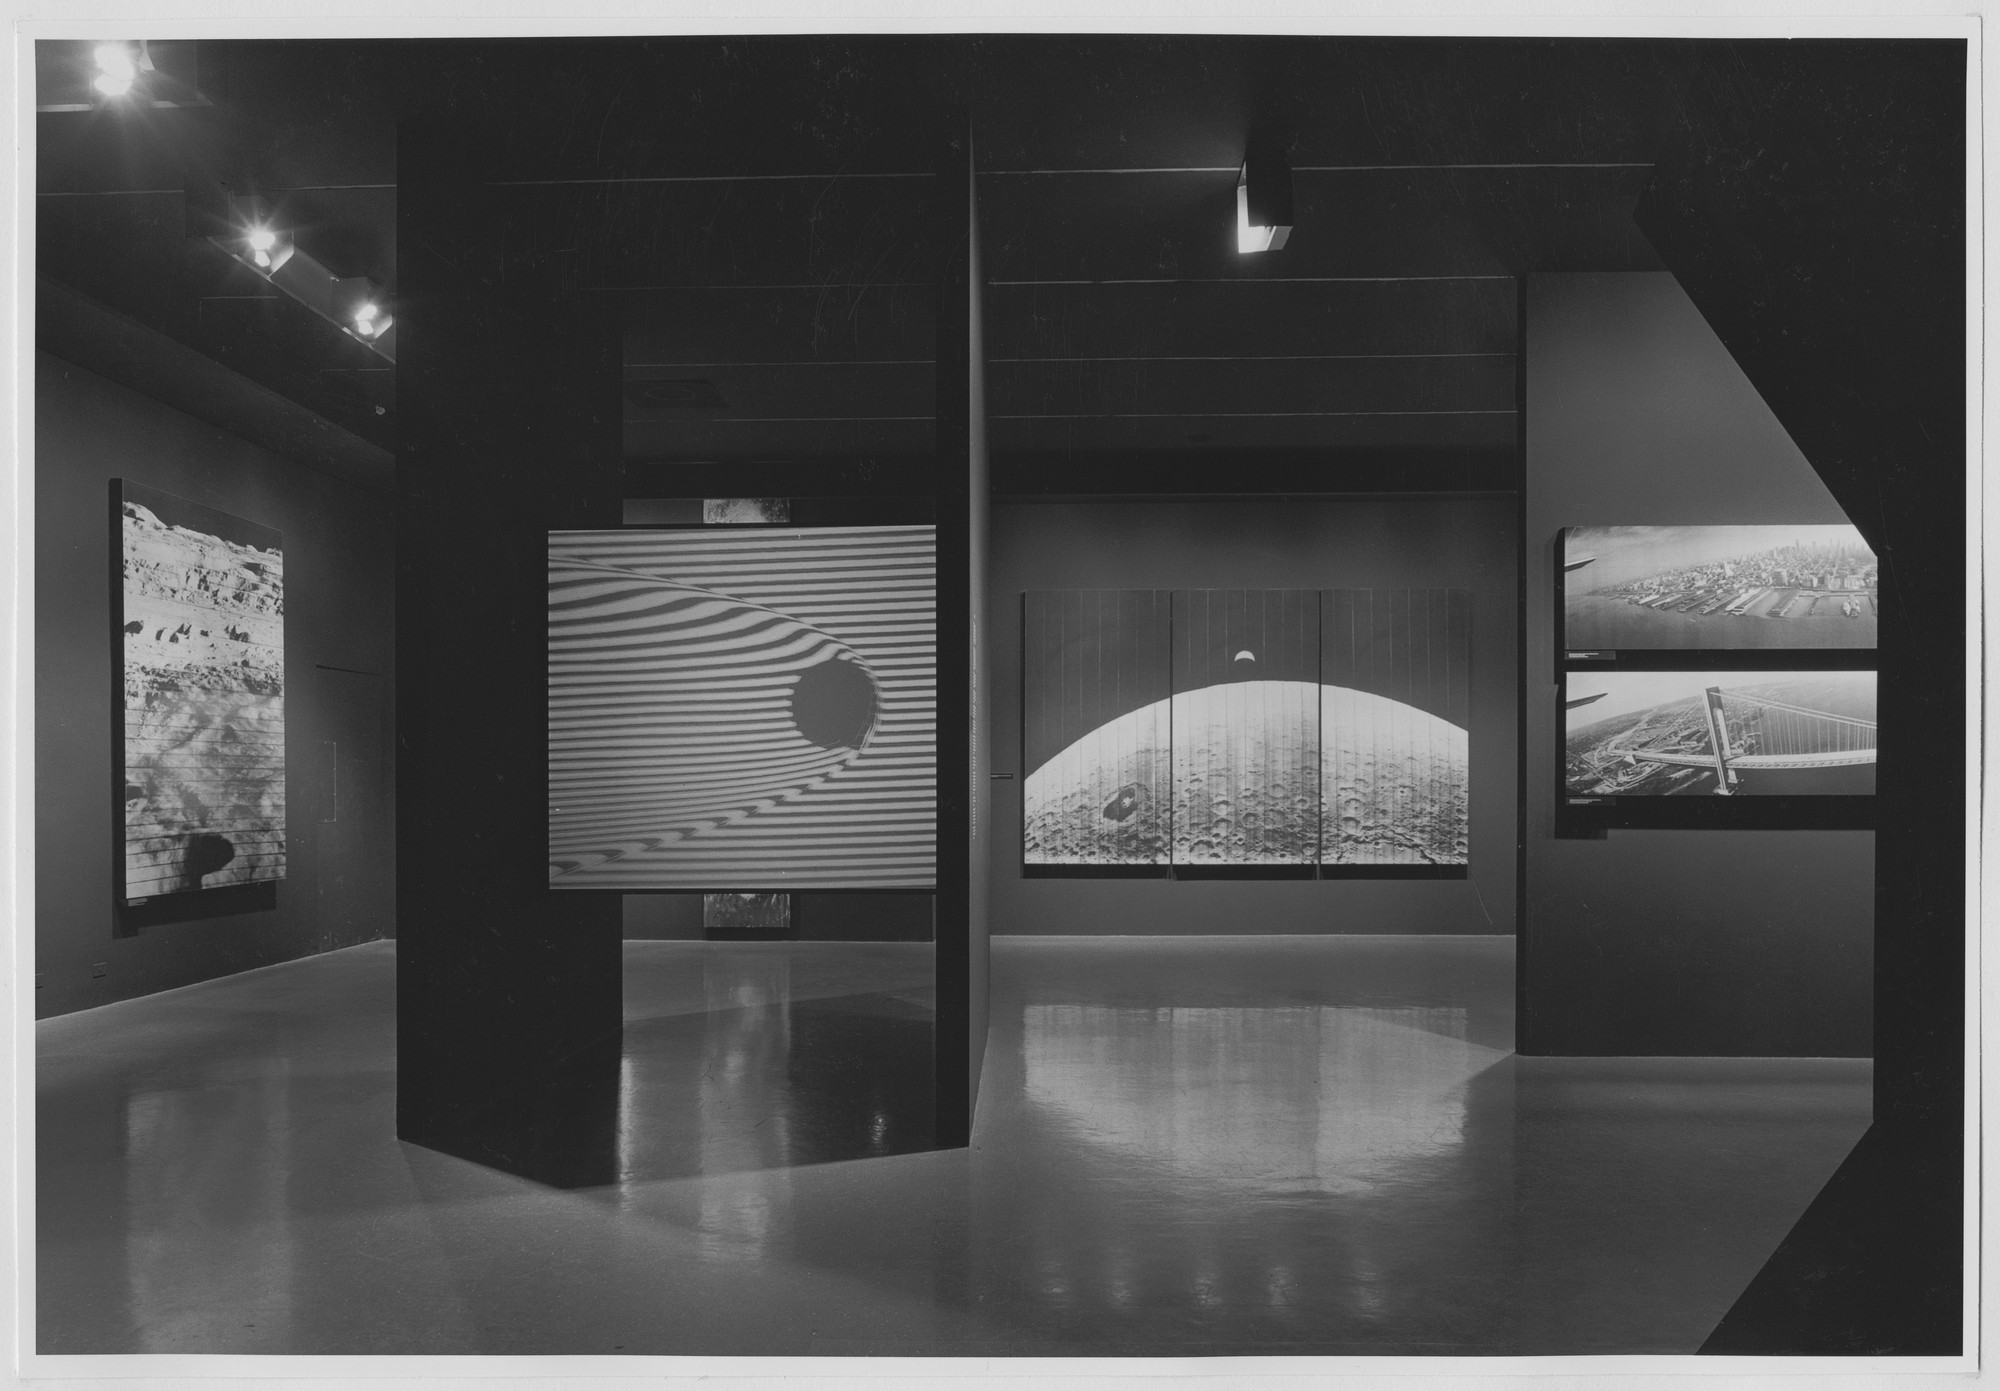 "Installation view of the exhibition, ""Once Invisible."" June 20, 1967–September 11, 1967. Photographic Archive. The Museum of Modern Art Archives, New York. IN833.1. Photograph by James Mathews."